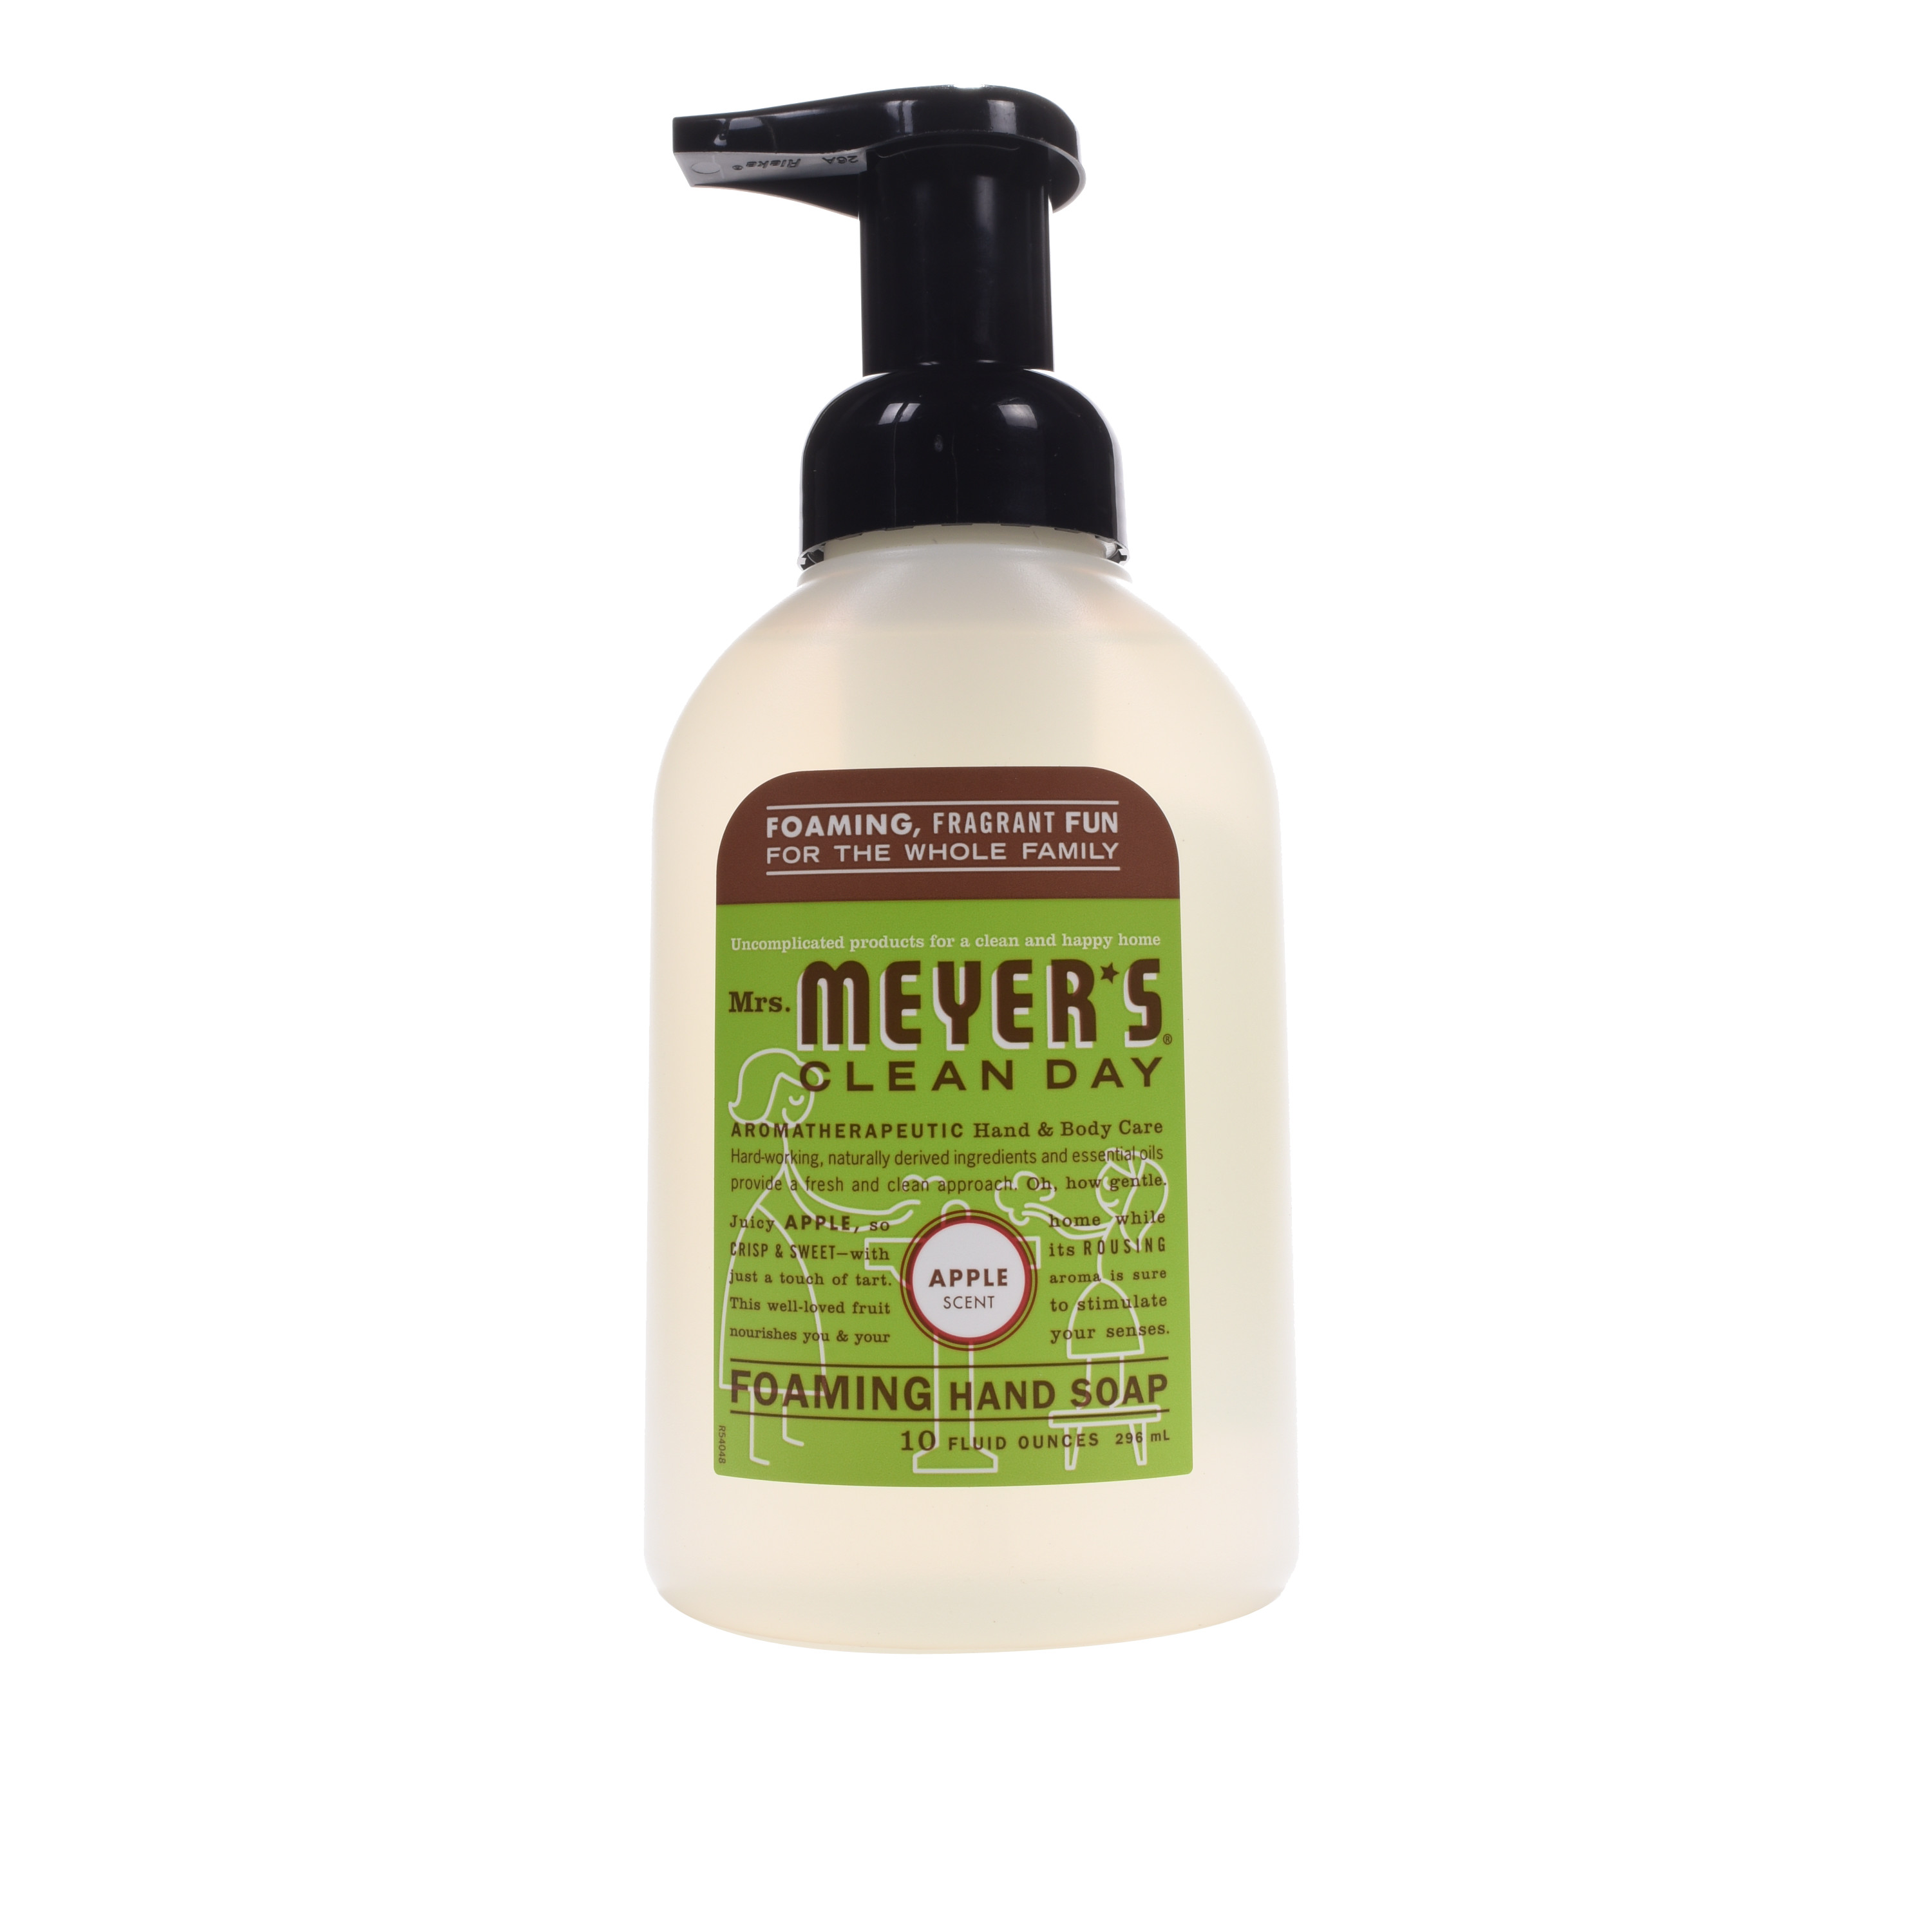 Mrs Meyers Hand Soap, Foaming, Apple Scent